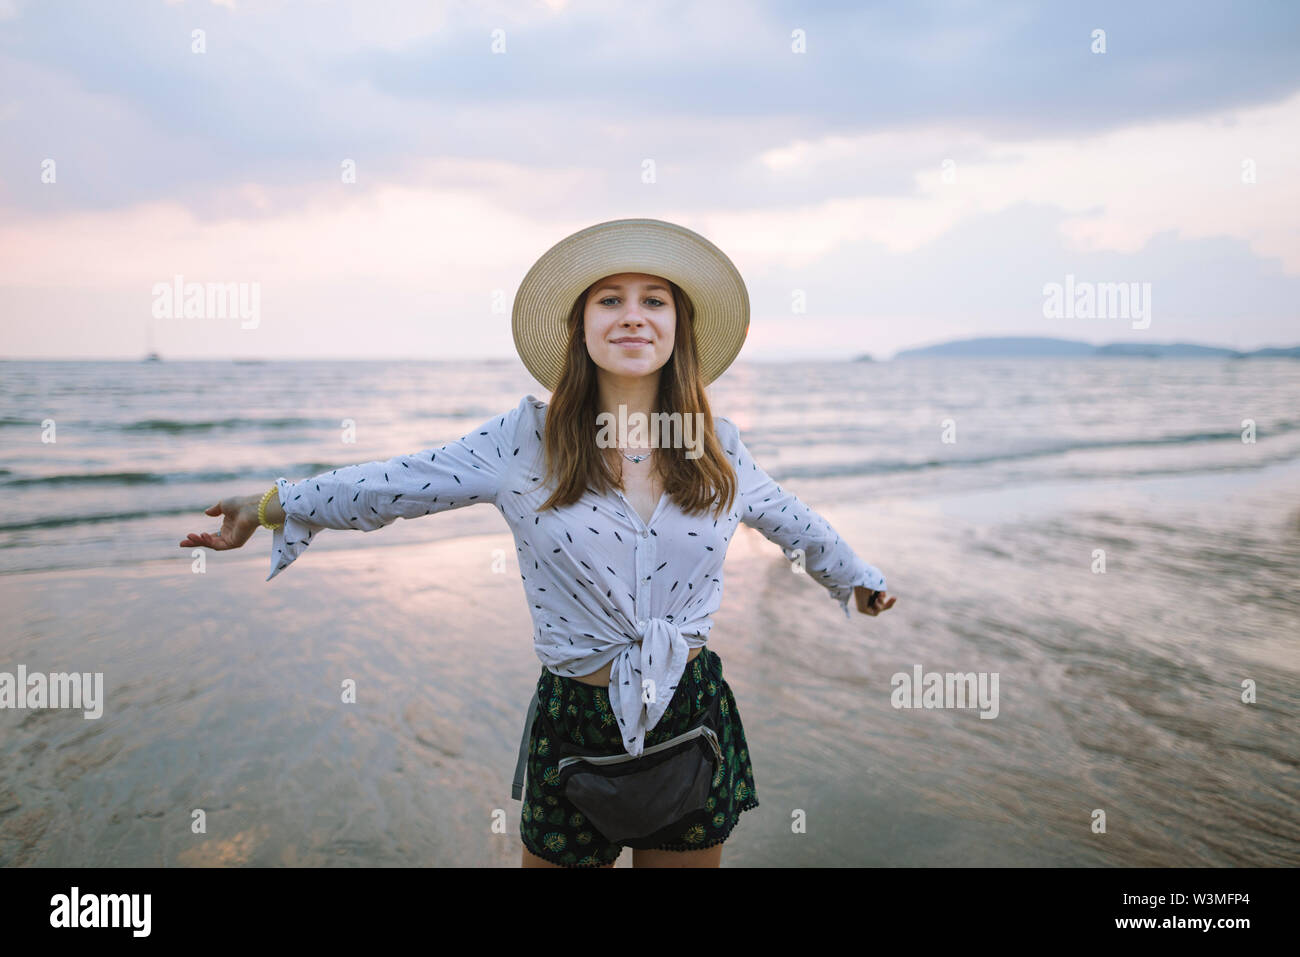 Young woman in sun hat on beach in Krabi, Thailand - Stock Image